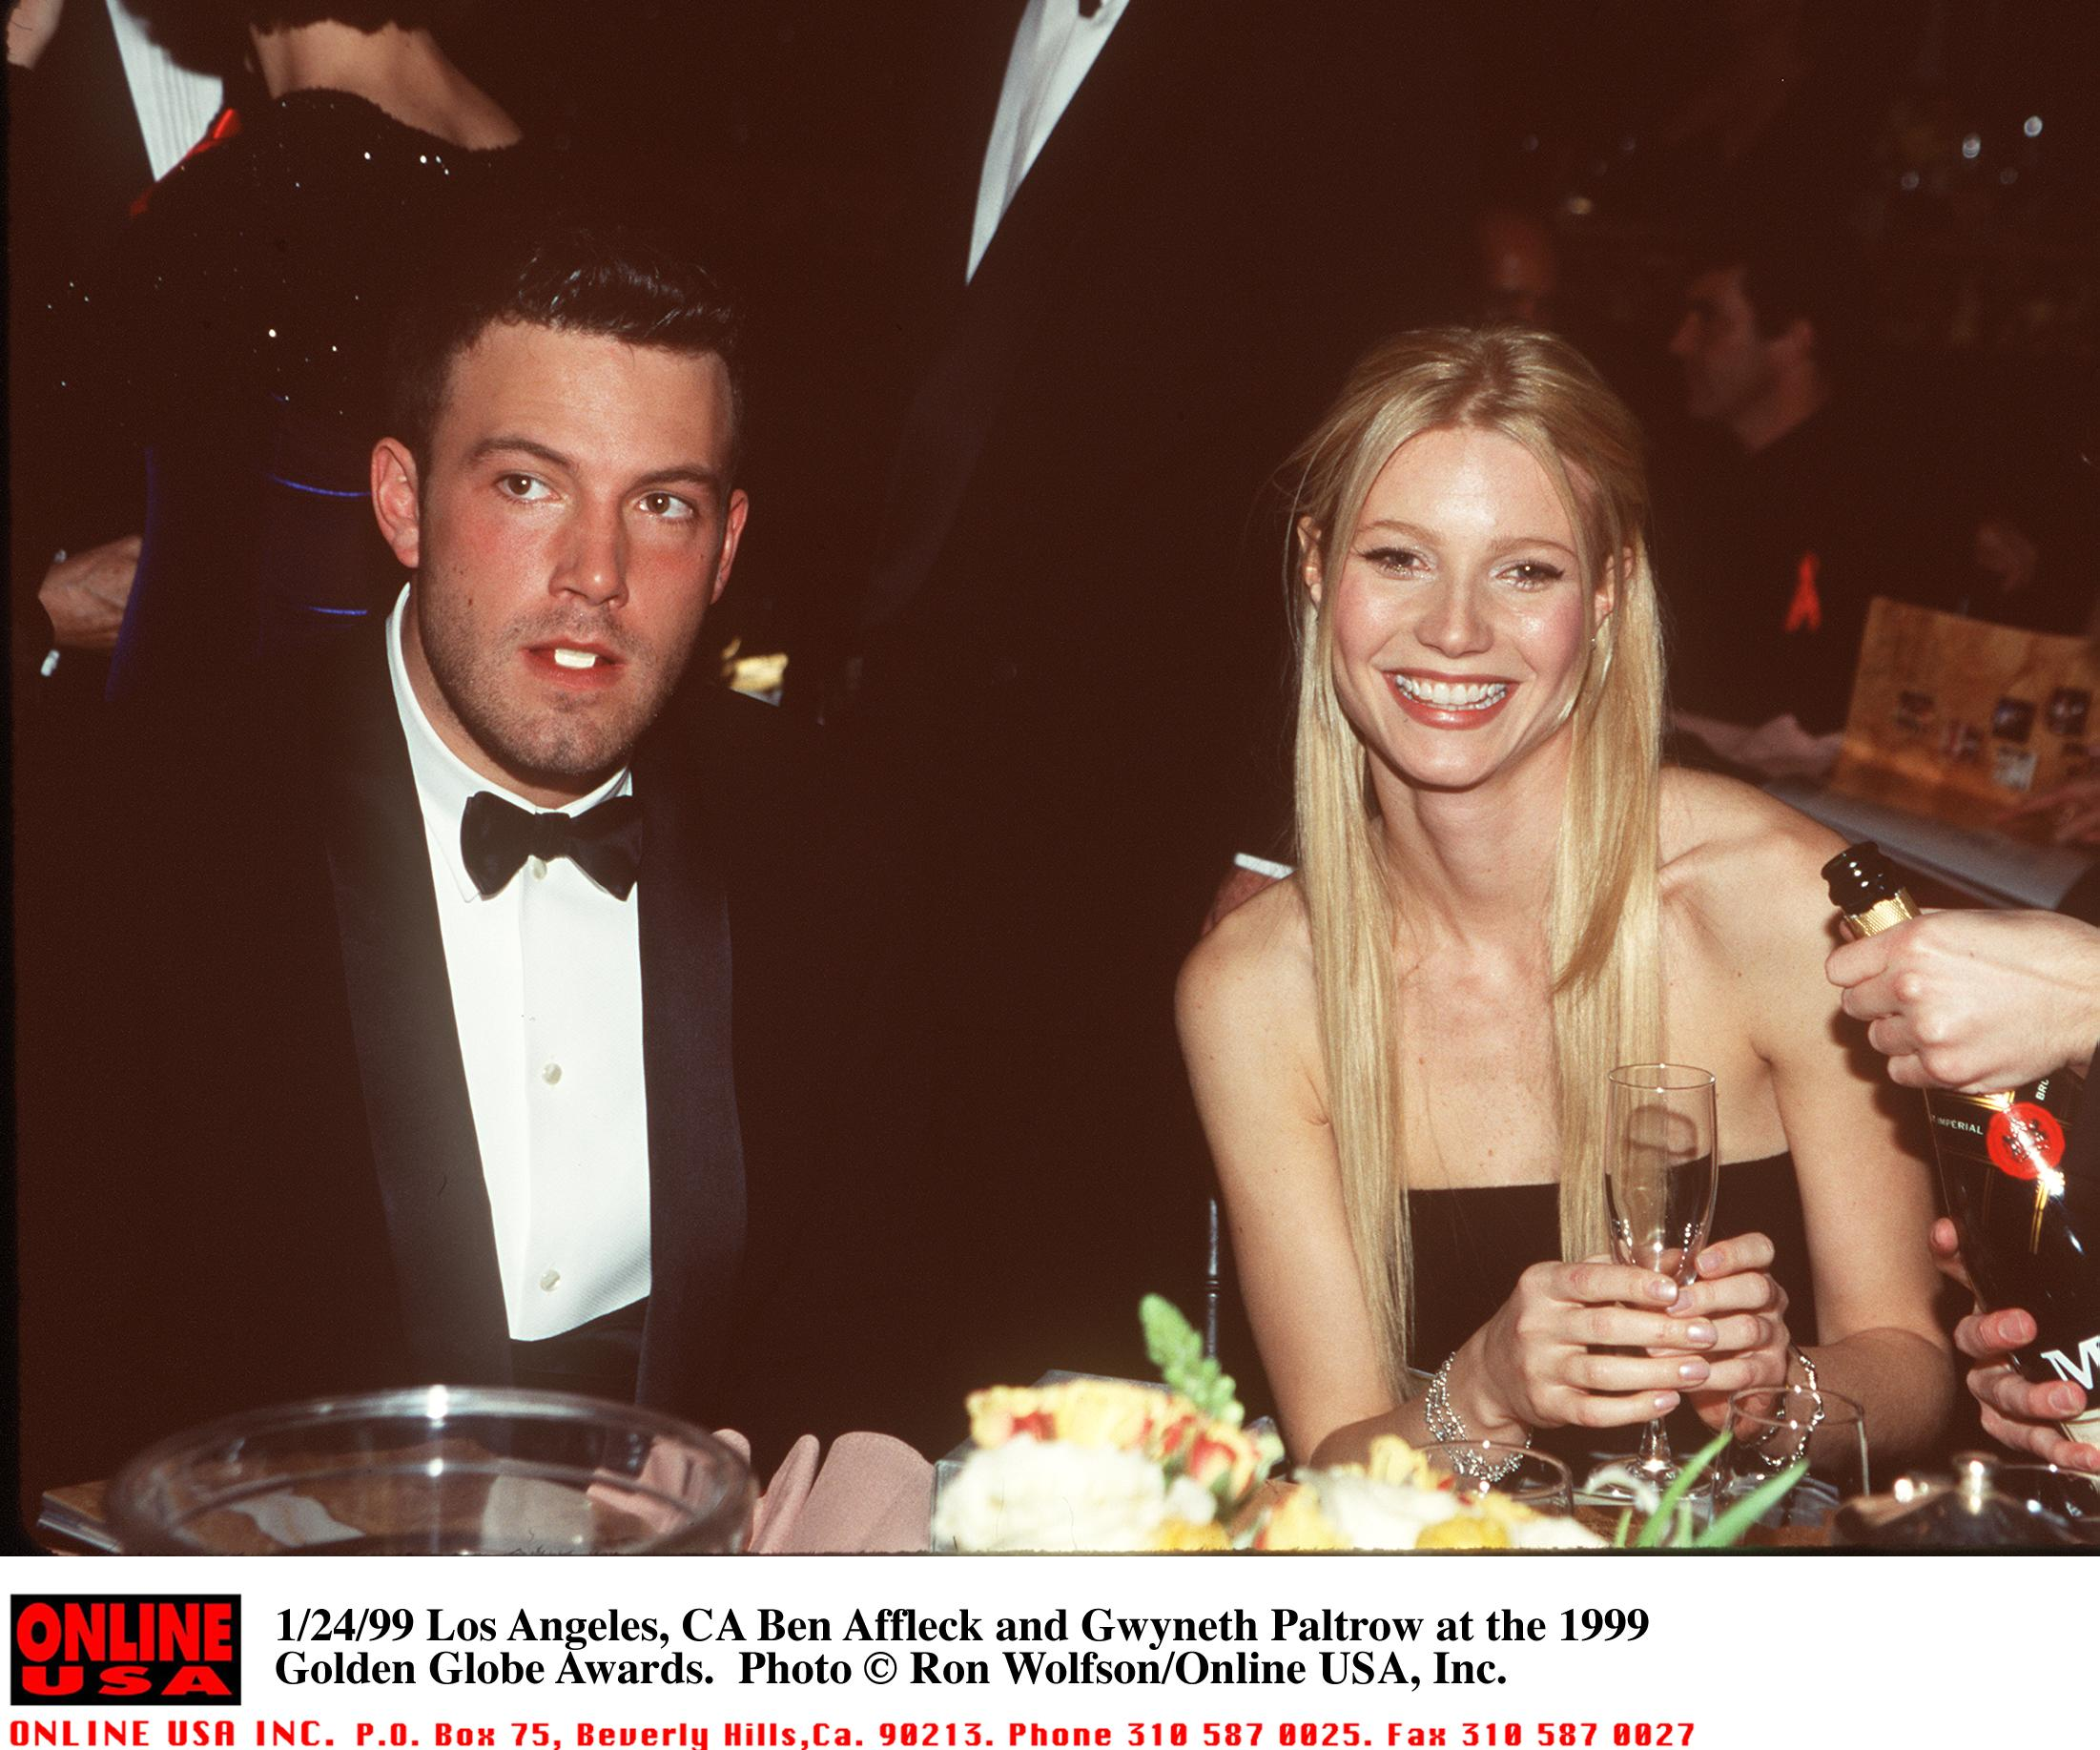 Image Credits: Getty Images / Ron Wolfson / Online USA | Ben Affleck and Gwyneth Paltrow at the 1999 Golden Globe Awards January 24, 1999 in Los Angeles, CA.